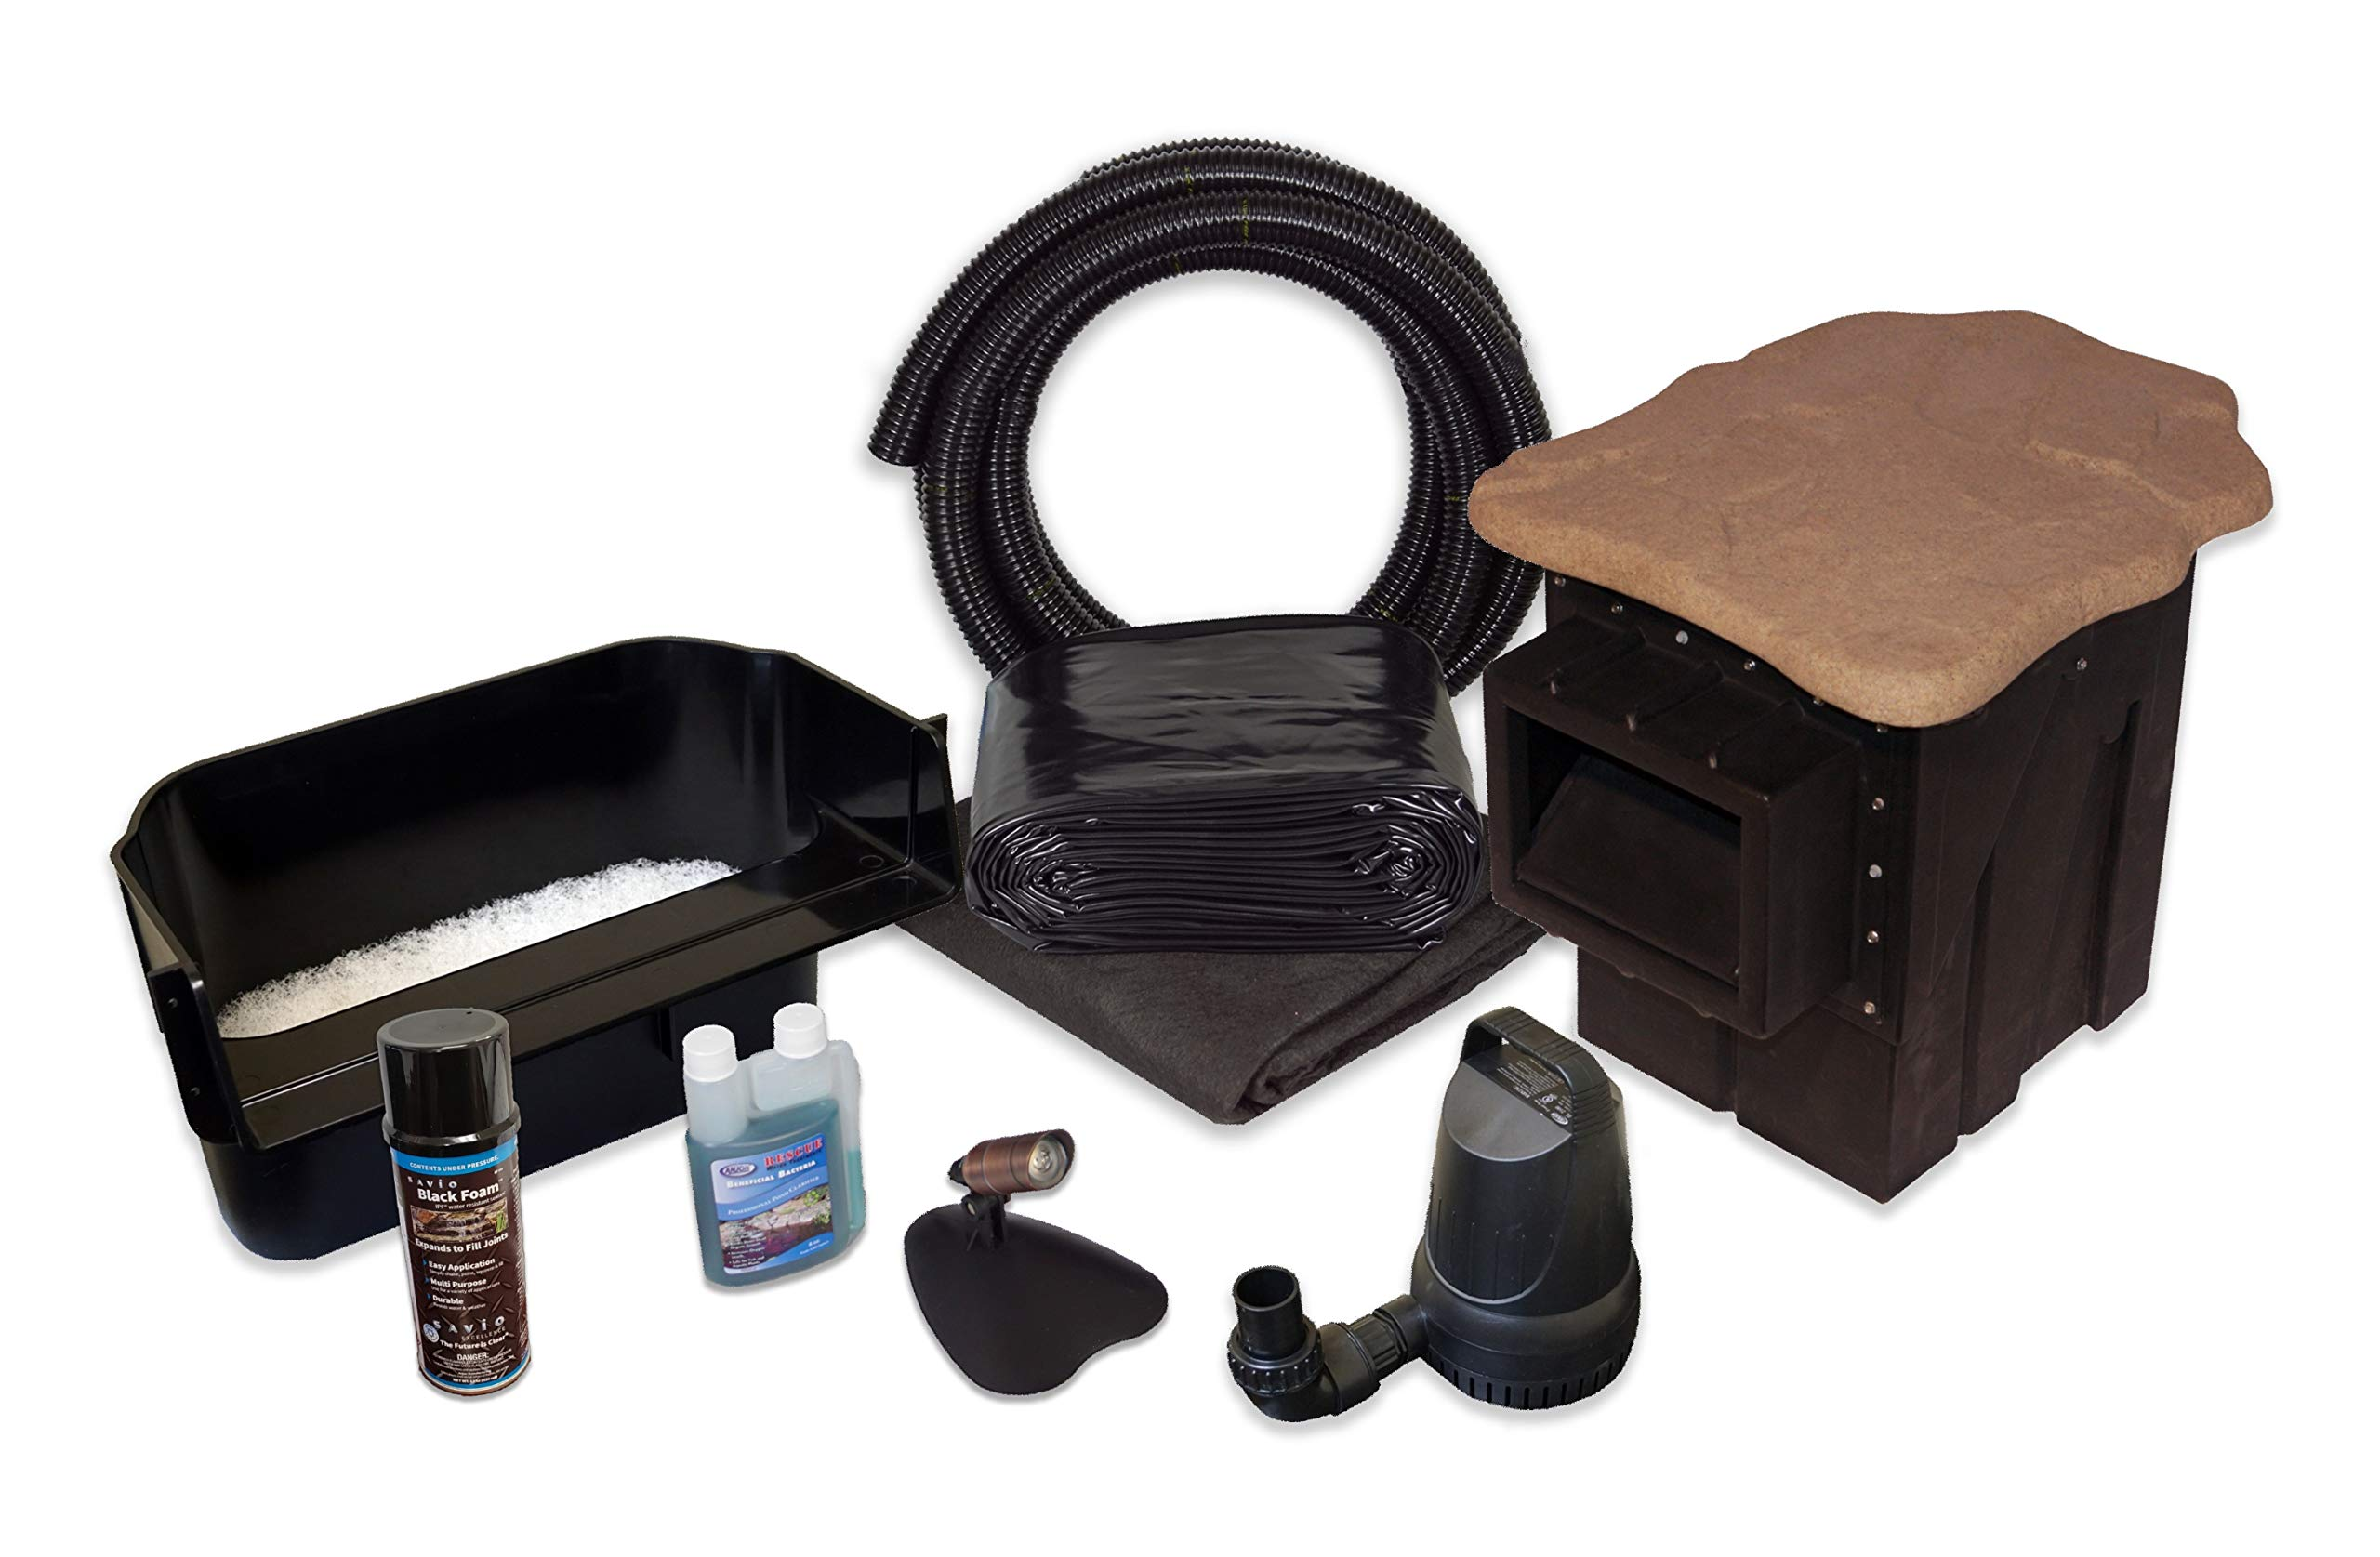 Simply Ponds 2100 Water Garden and Pond Kit with 15 Foot x 20 Foot PVC Liner